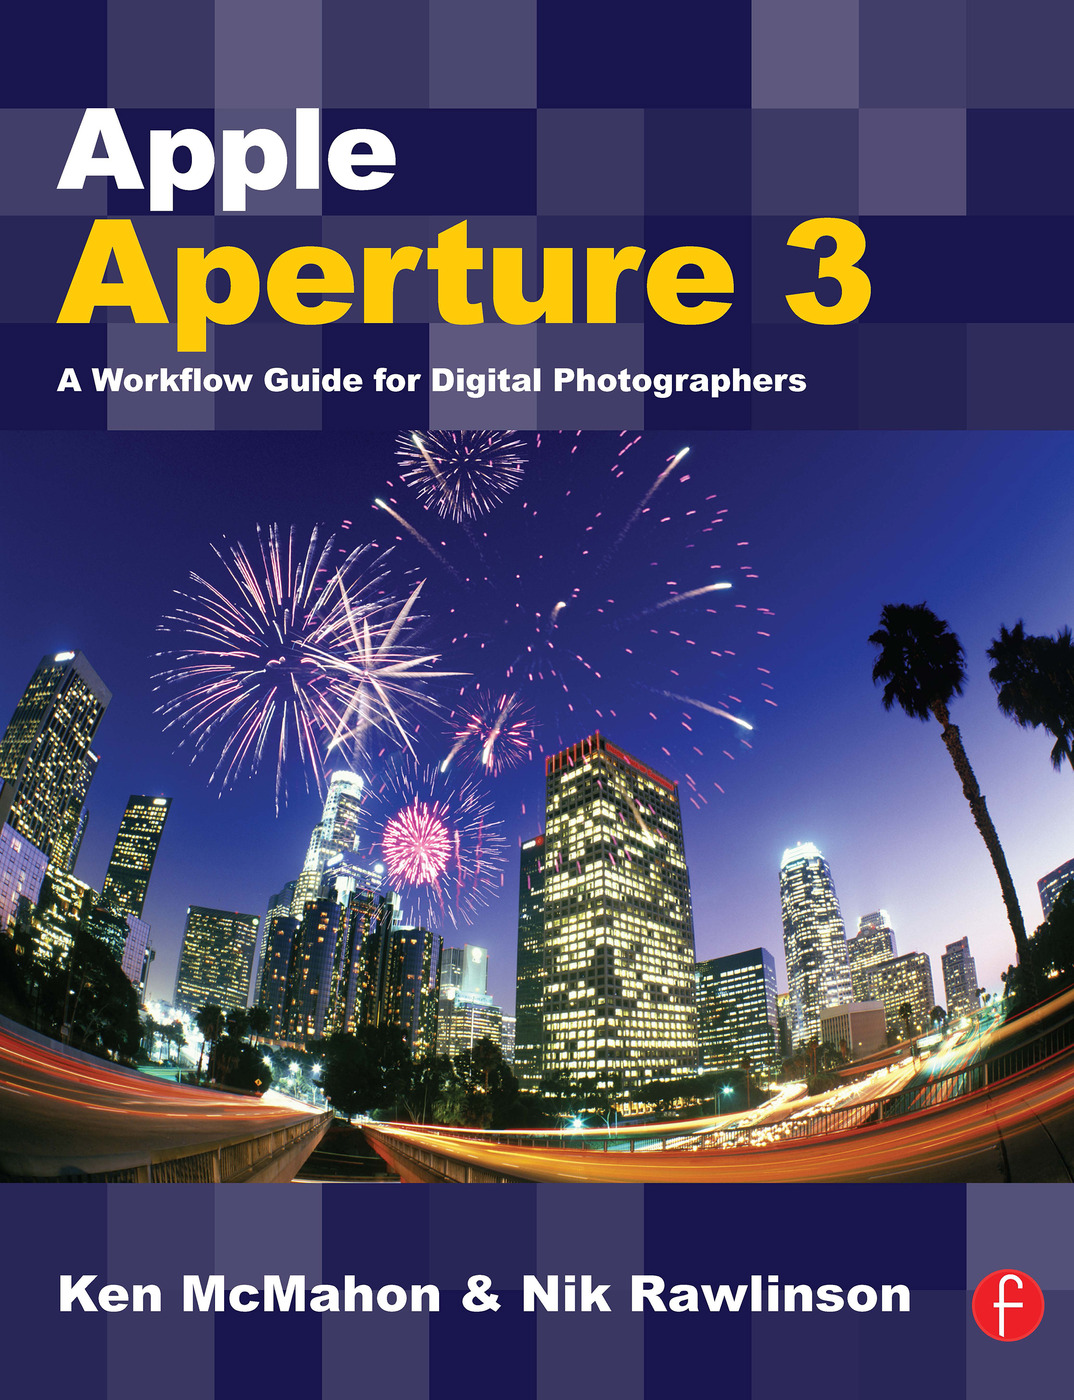 Apple Aperture 3: A Workflow Guide for Digital Photographers book cover